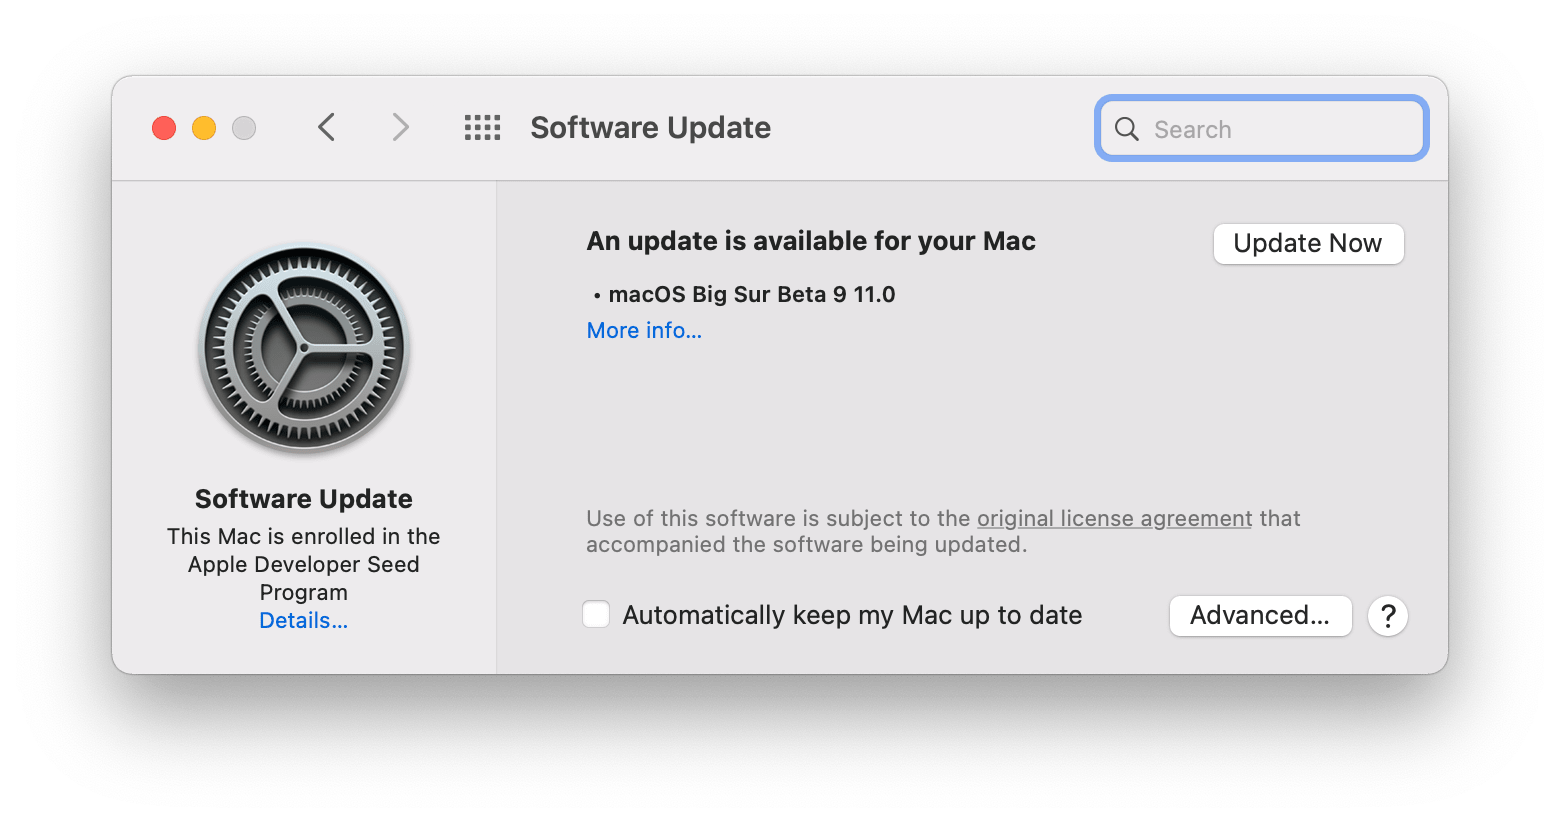 macOS Big sur software update window